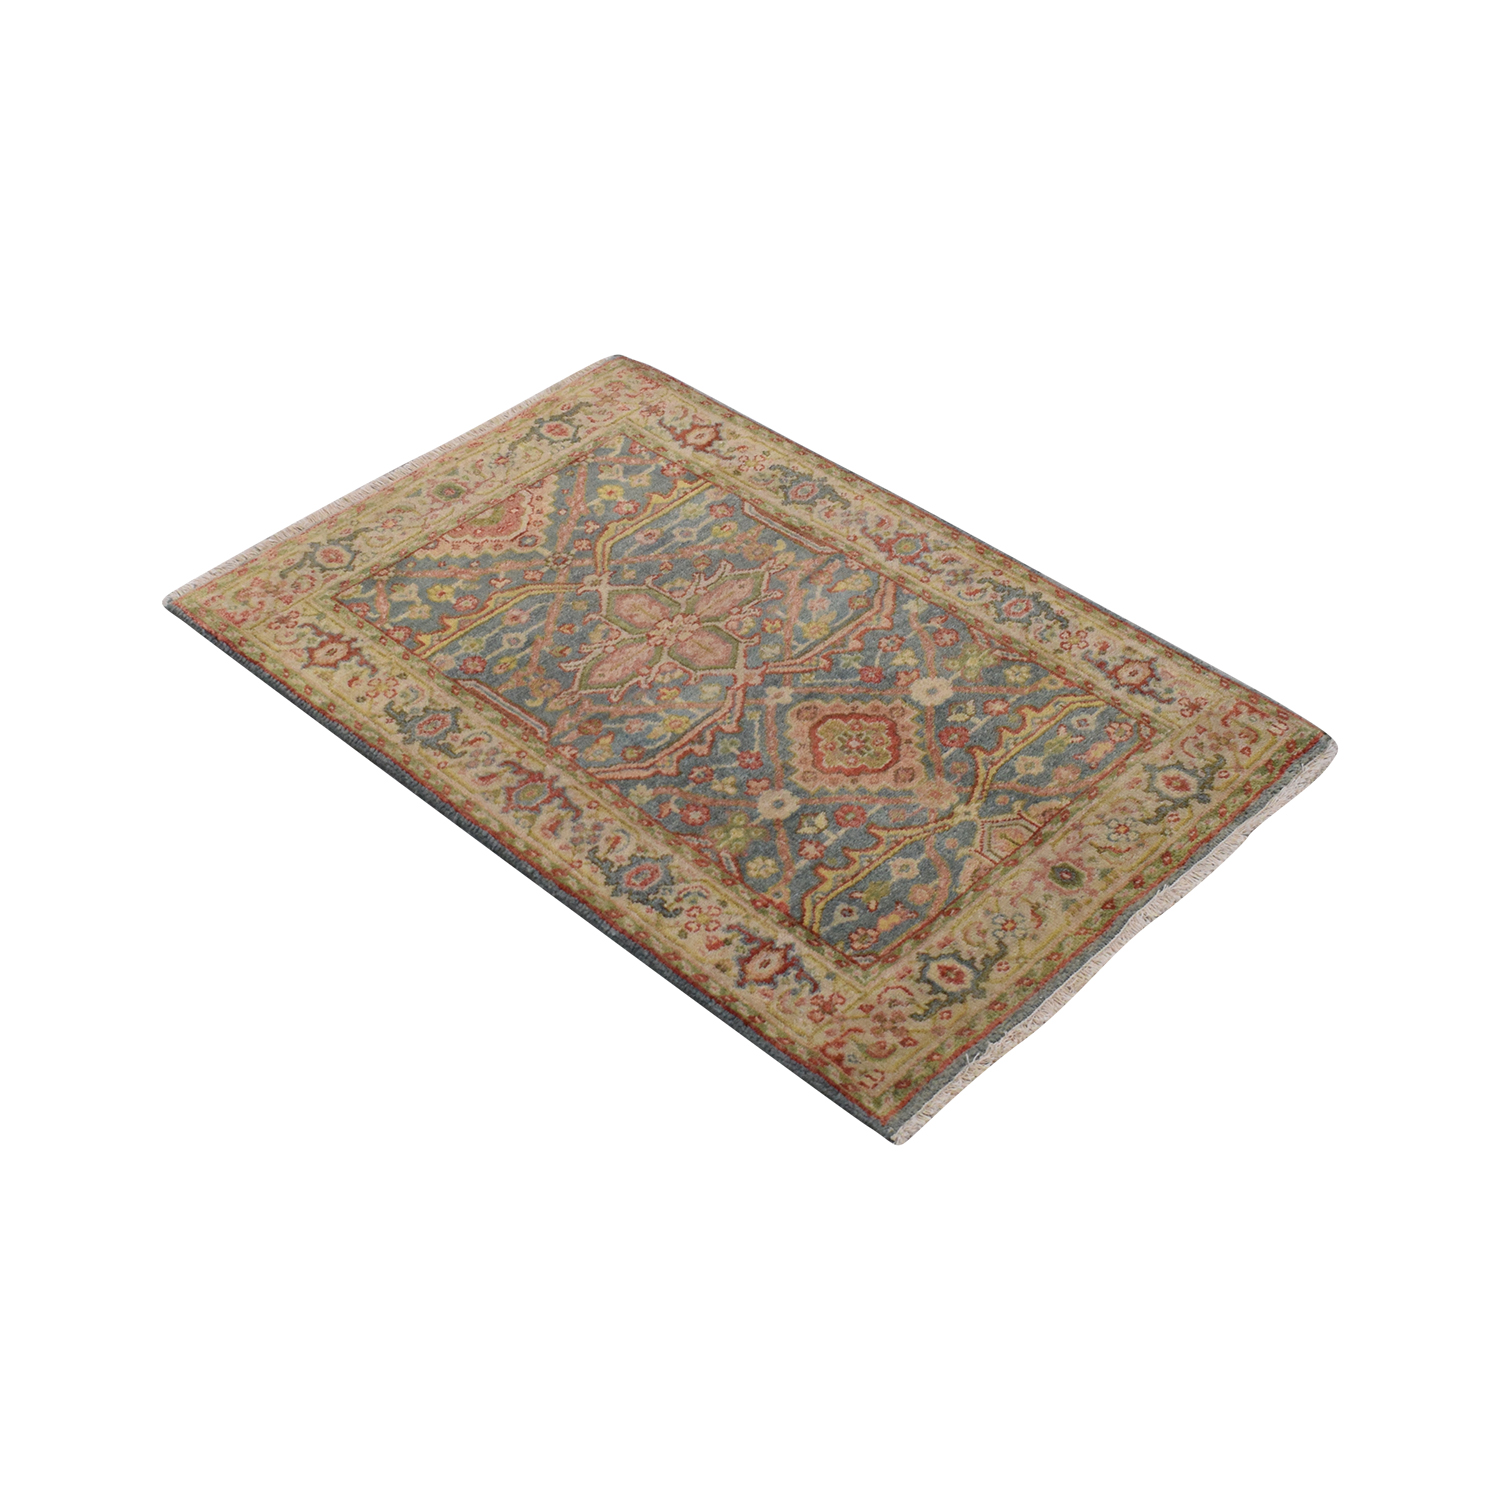 Wayfair Wayfair Rug nyc